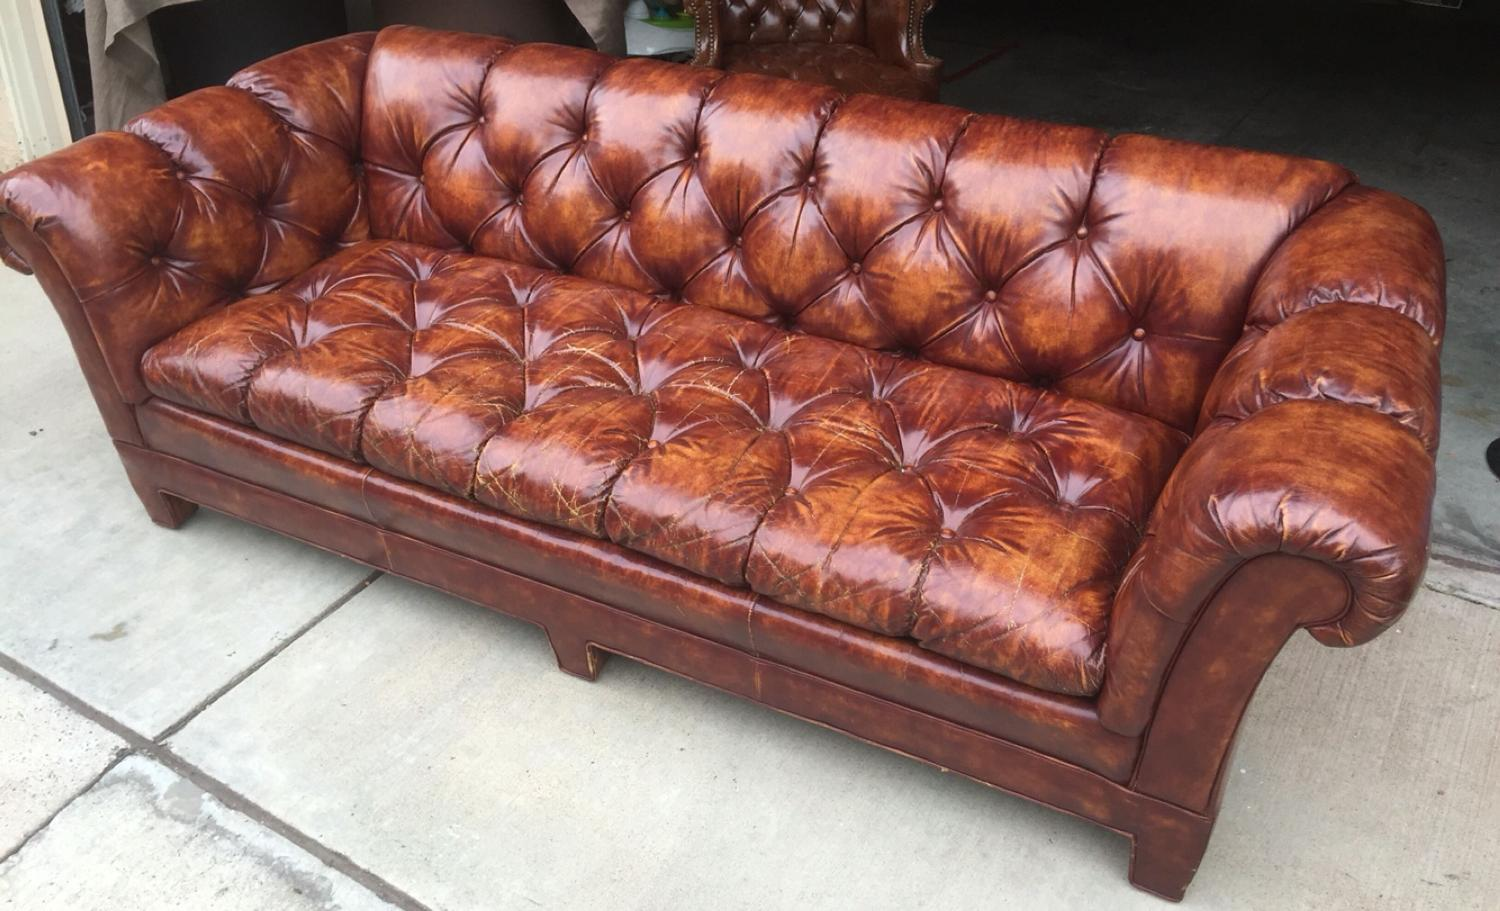 kroehler craigslist loveseat pictures beds delightful of couches size mattress lounge for sleeper sofas barcalounger couch the sale from tables sofa full vintage ideas dimensionsvintage and